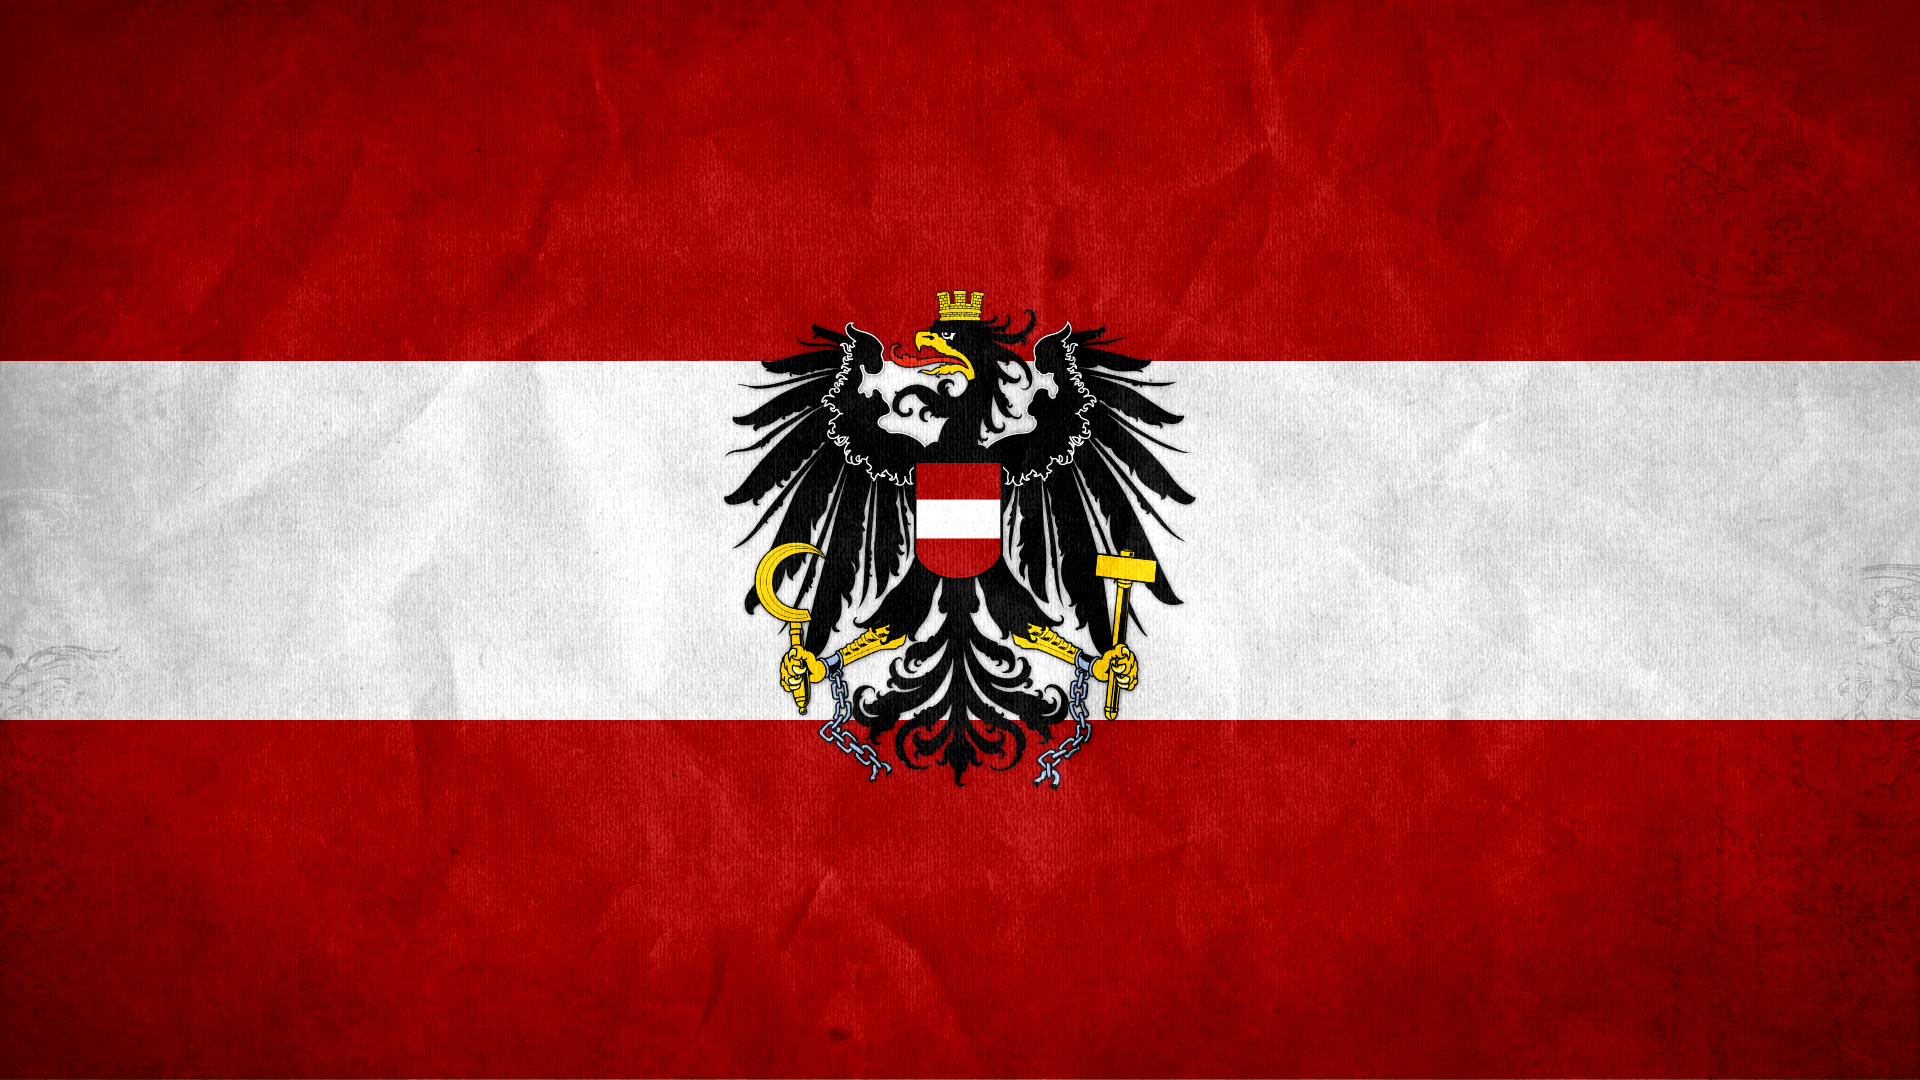 Flag Desktop Background: 3 HD Austria Flag Wallpapers